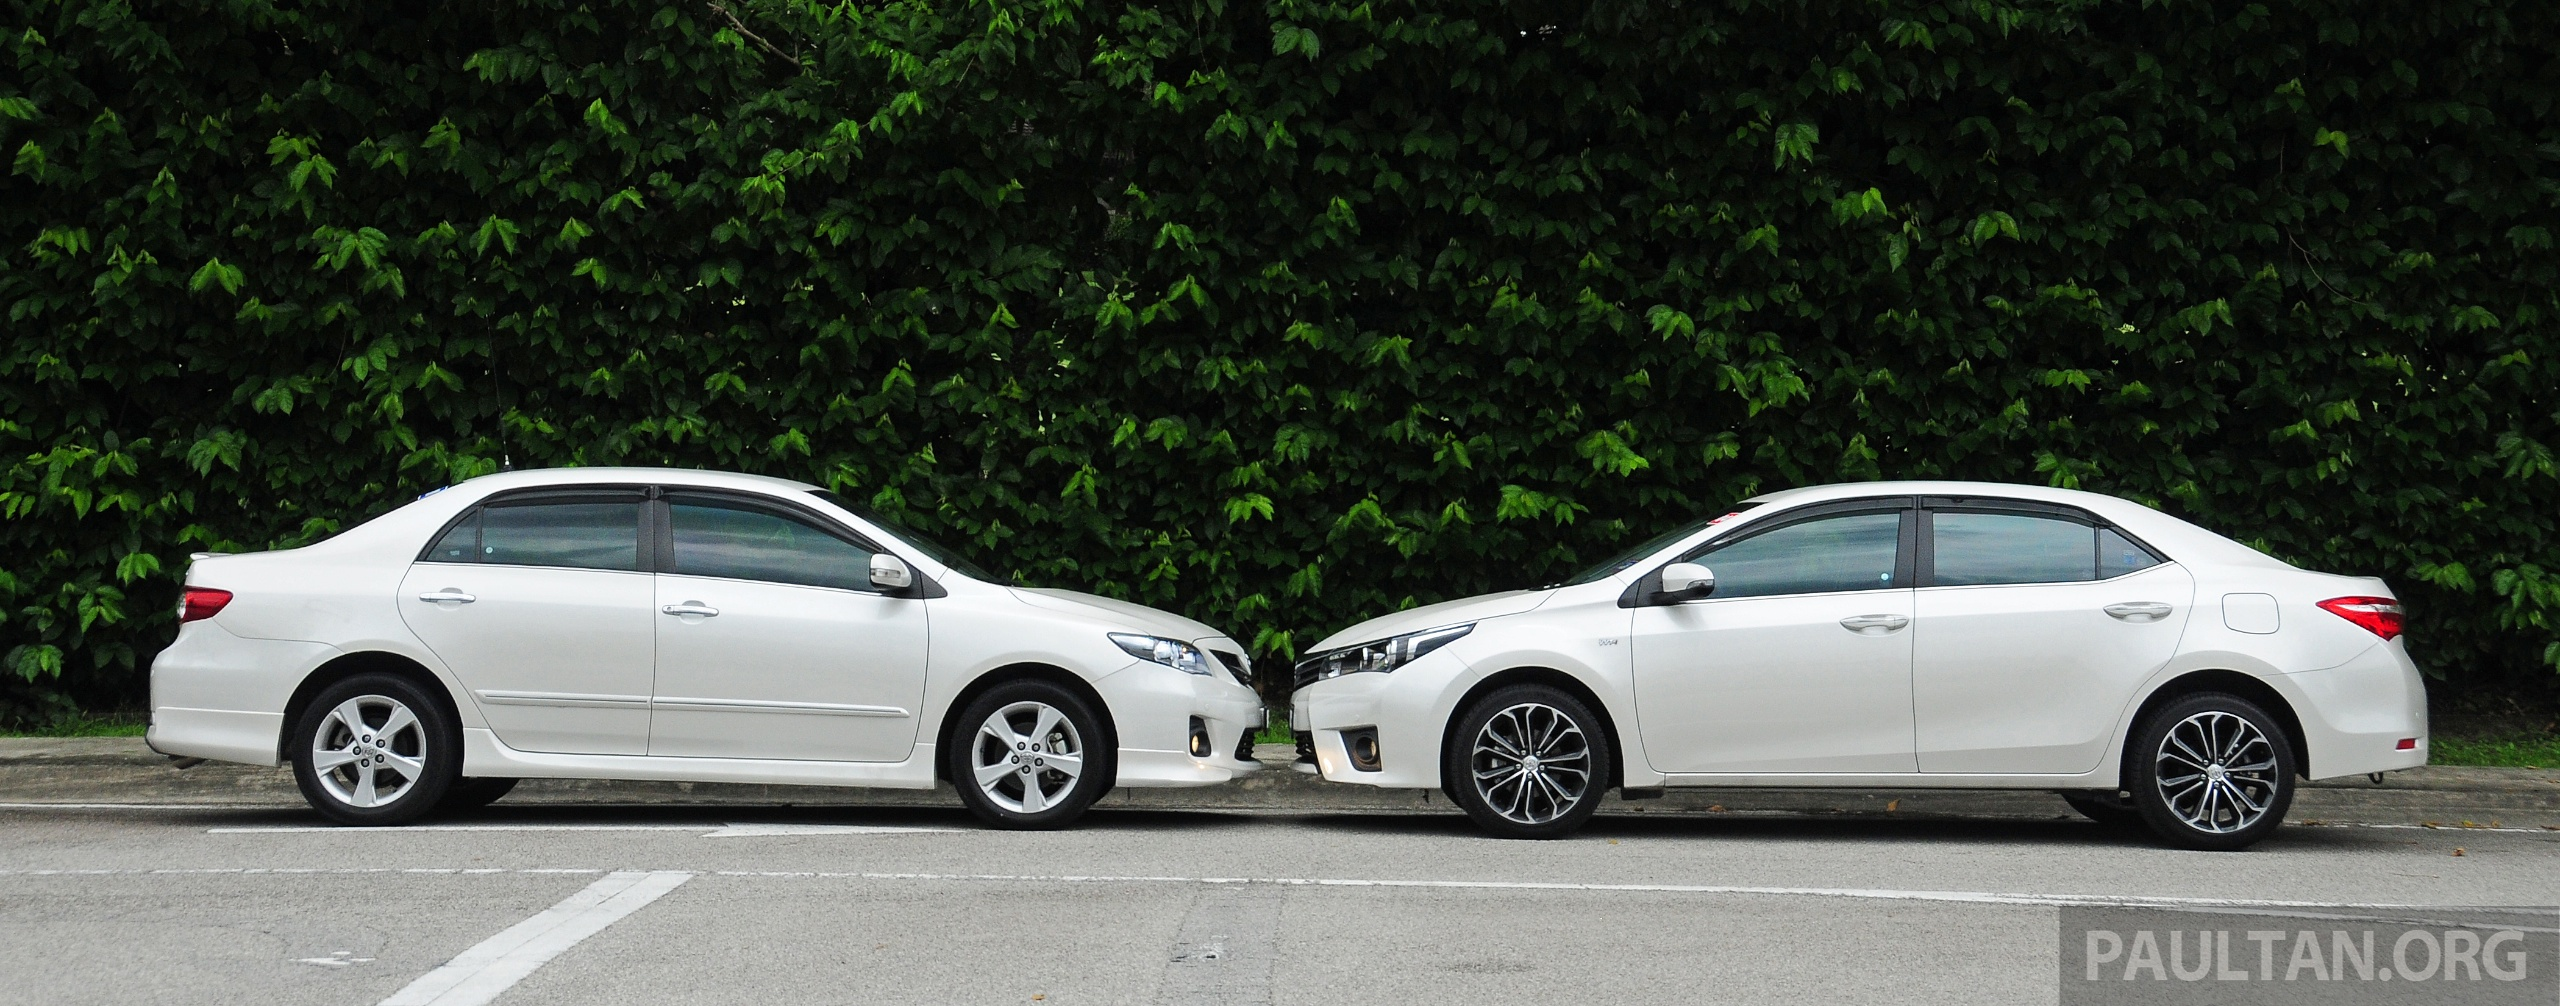 Gallery old and new toyota corolla altis compared image 222552